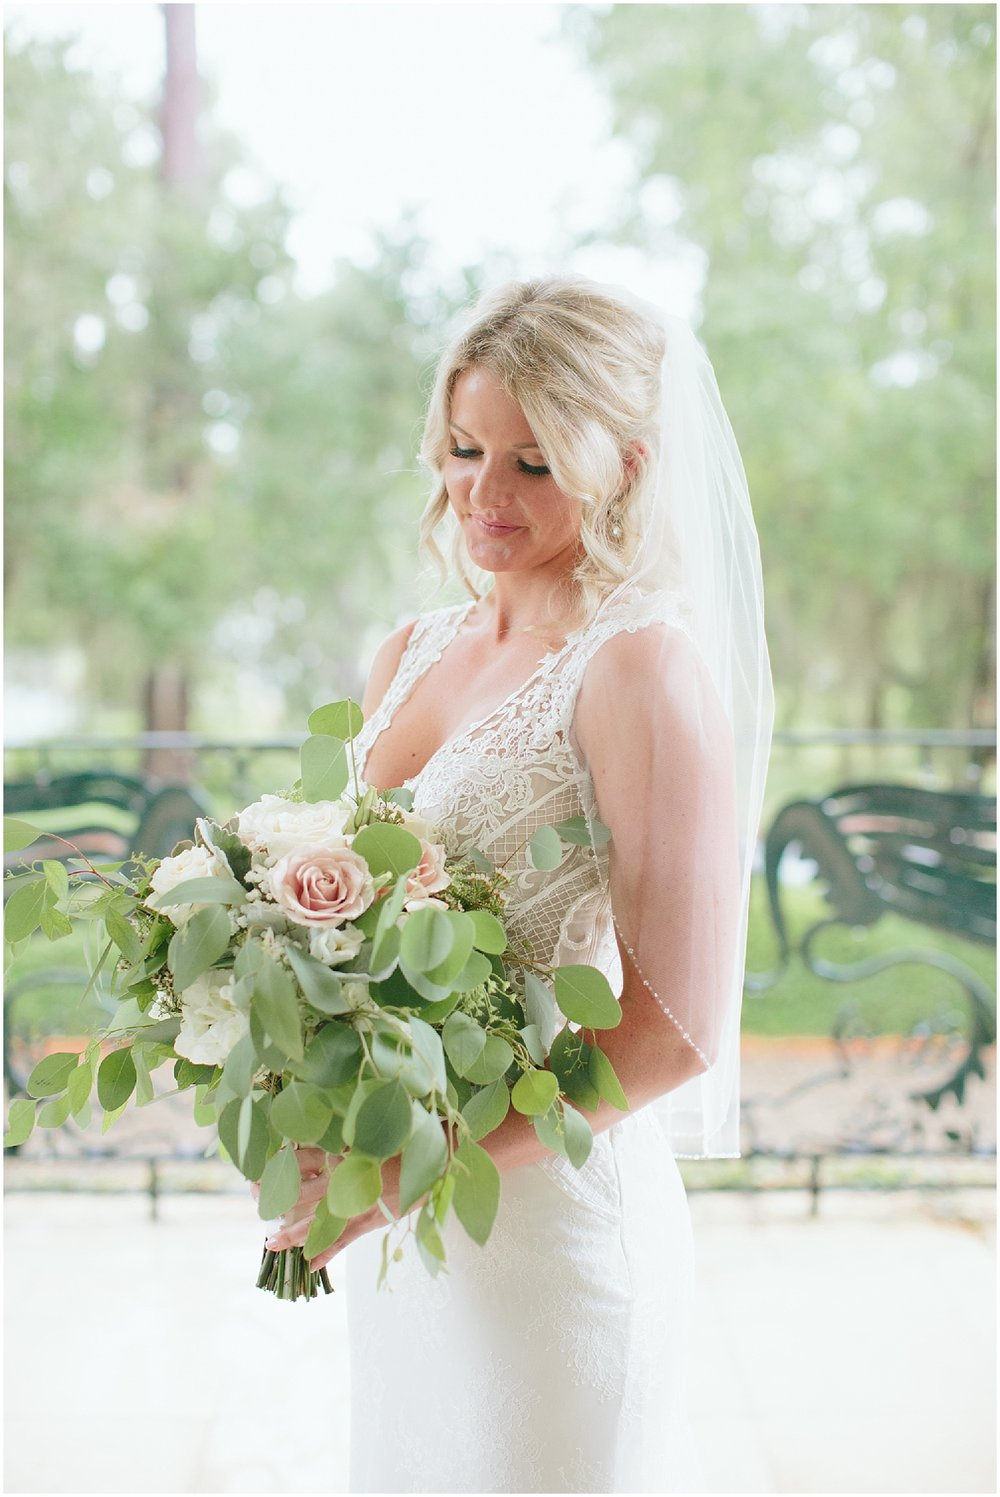 Paige_Molina_Wedding_Photographer_Fine_Art_Photography_Traditional_Inspiration_Elegant_Classic_Bride_Atlanta_Wedding__0031.jpg